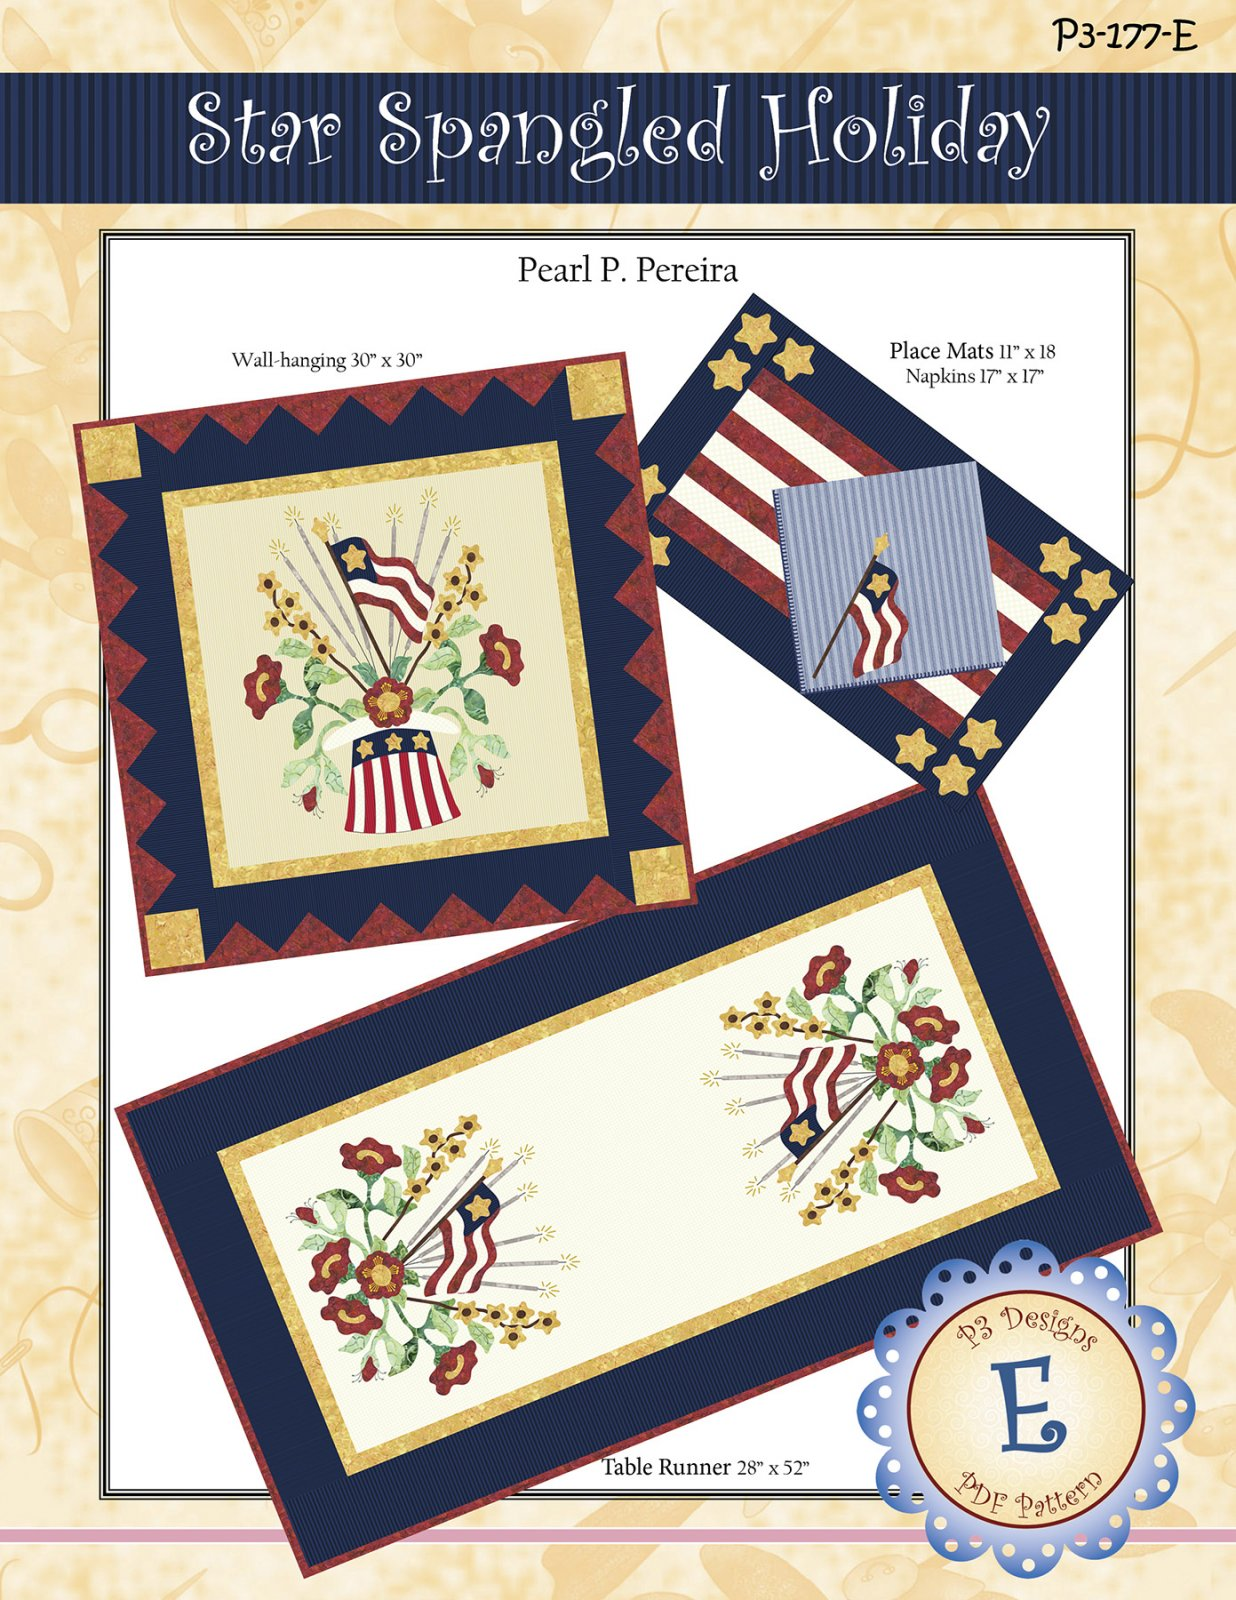 P3-177-E Star Spangled Holiday PDF Download